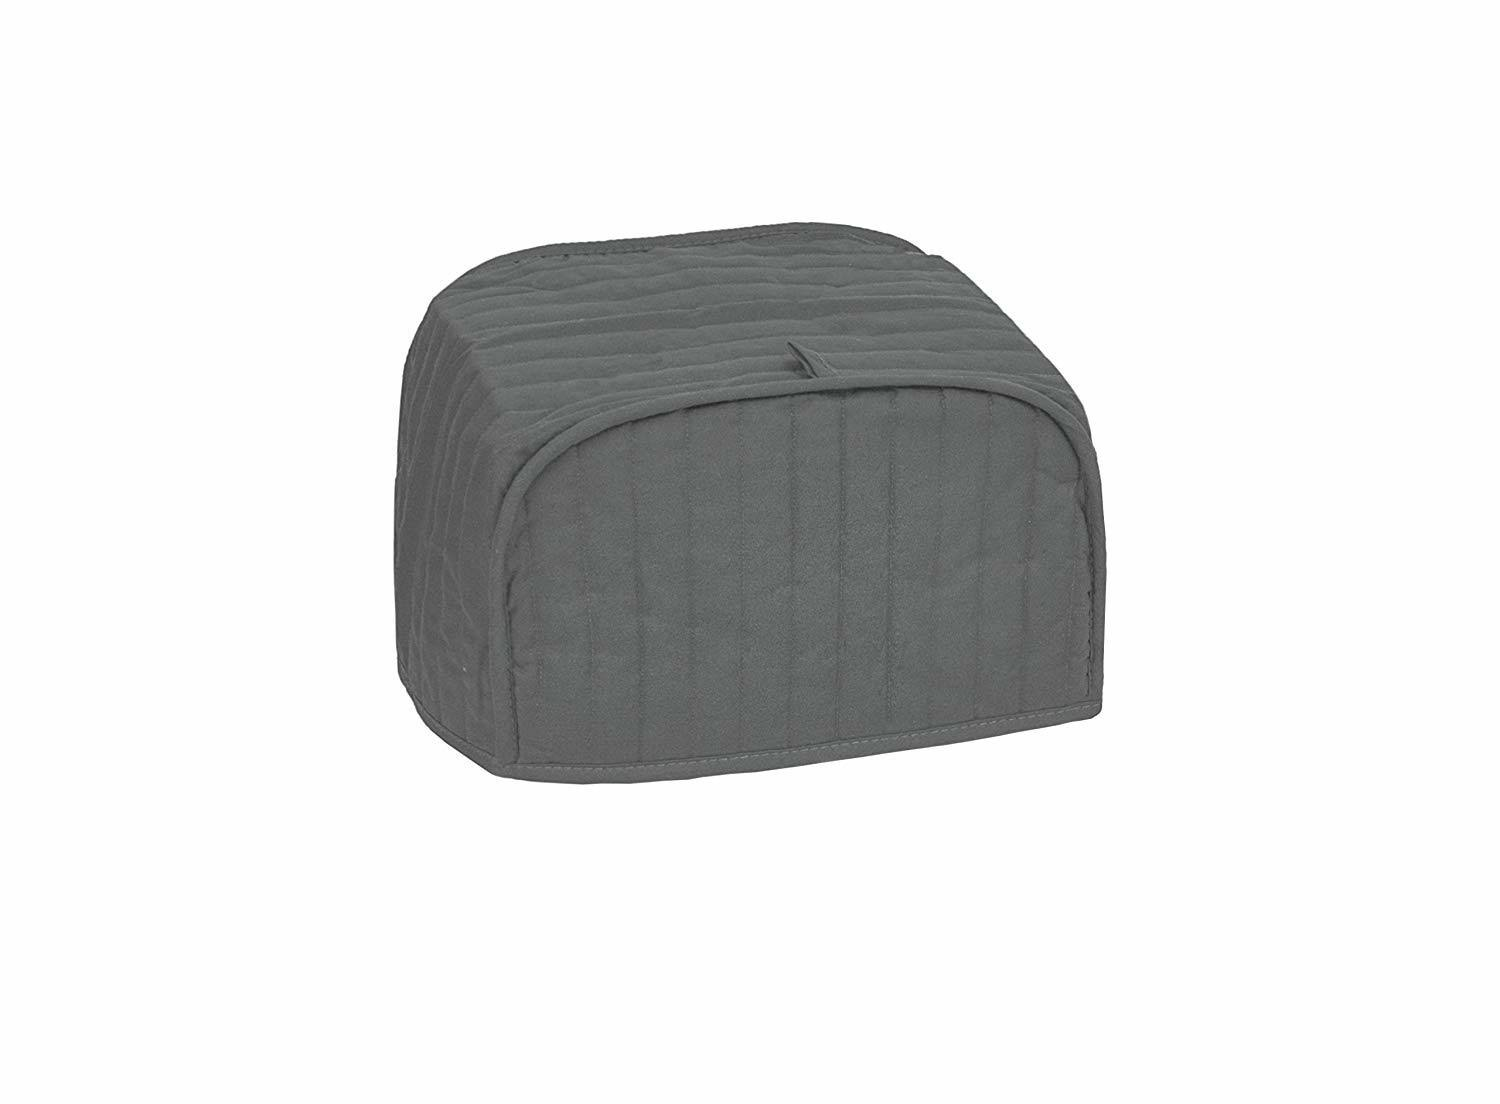 Ritz Quilted Two Slice Toaster Appliance Cover, Graphite